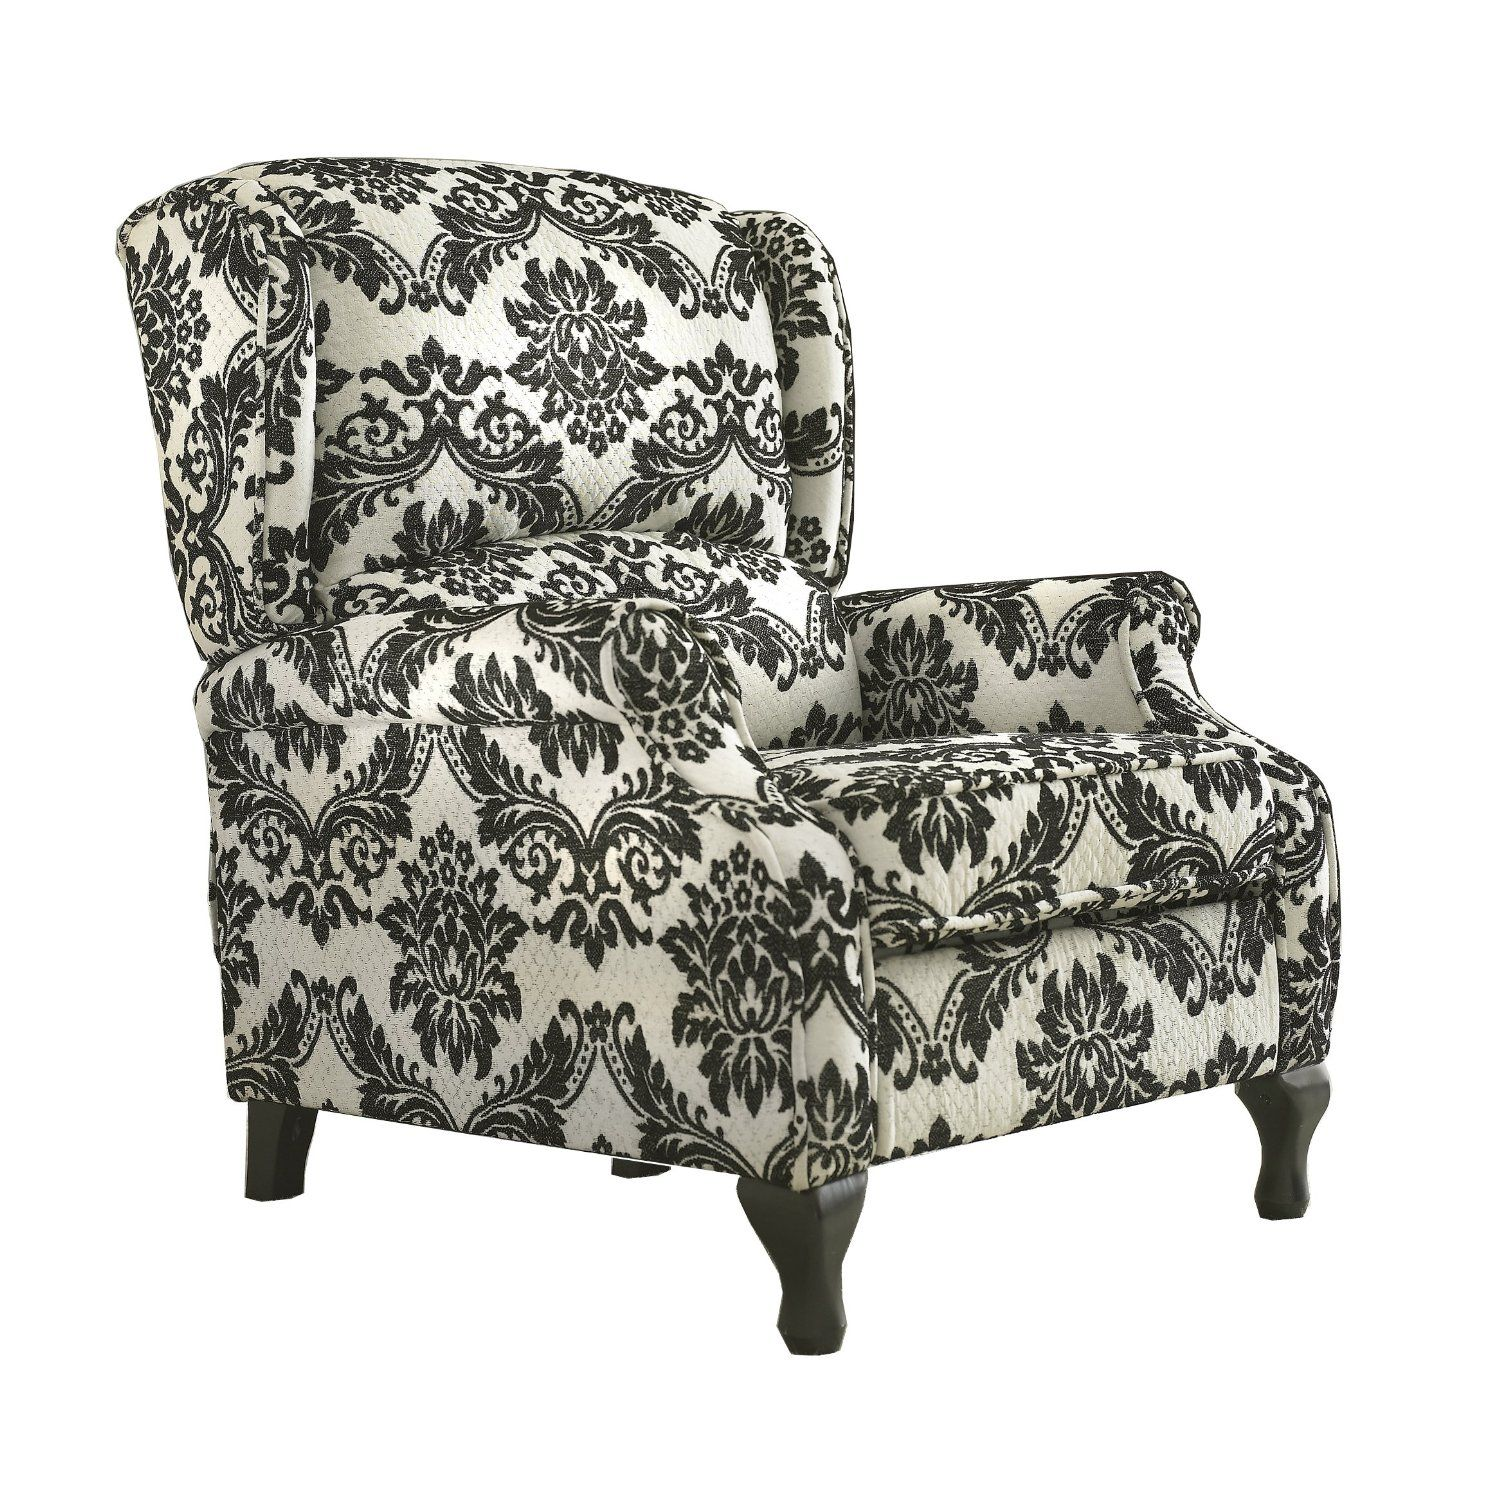 Damask lounge chair - Steals Modern Wing Back Chairs Under 300 Life Style Bargain